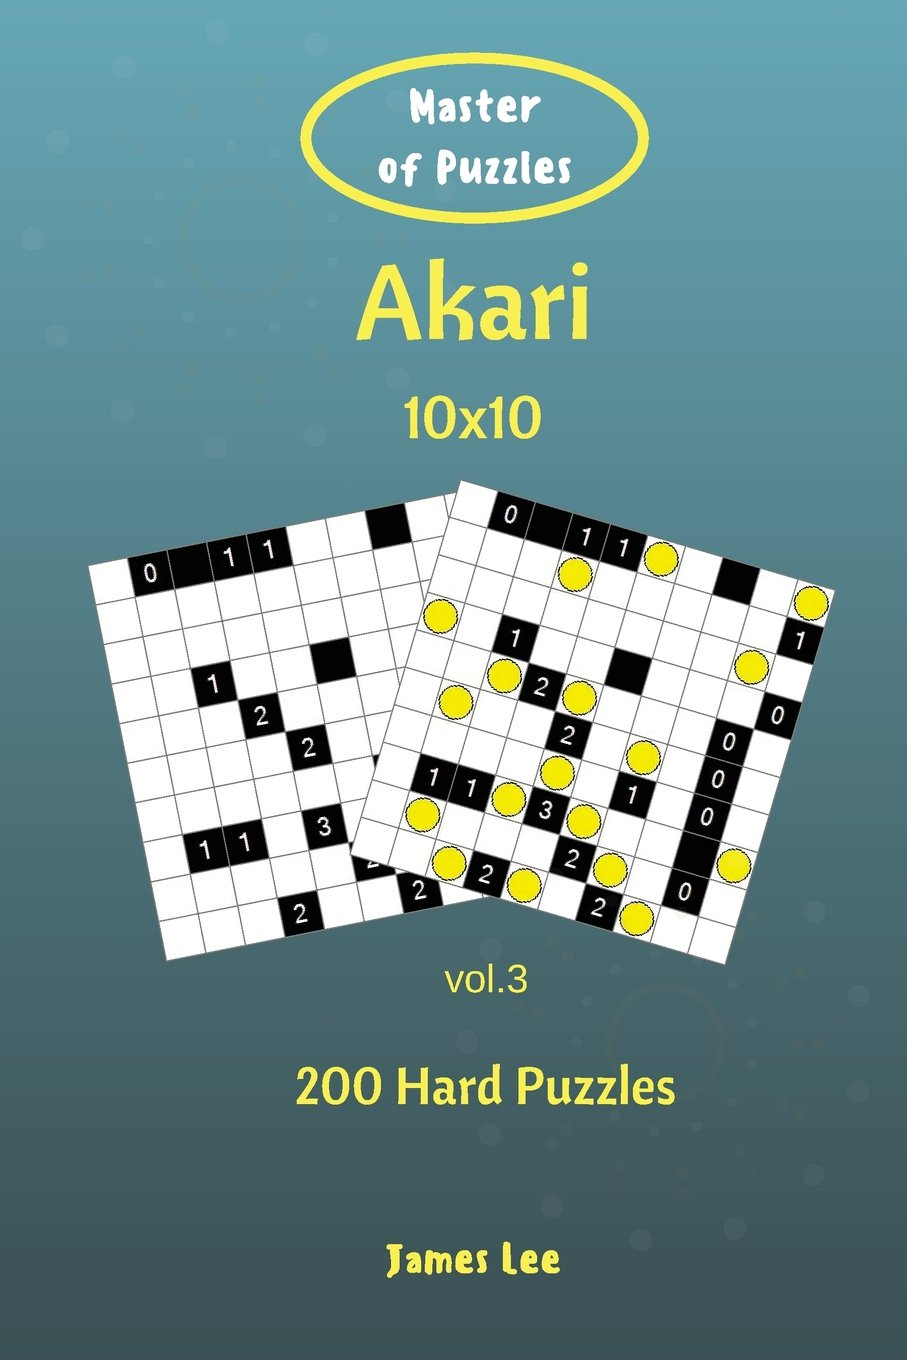 Read Online Master of Puzzles - Akari 200 Hard Puzzles 10x10 vol. 3 (Volume 3) pdf epub